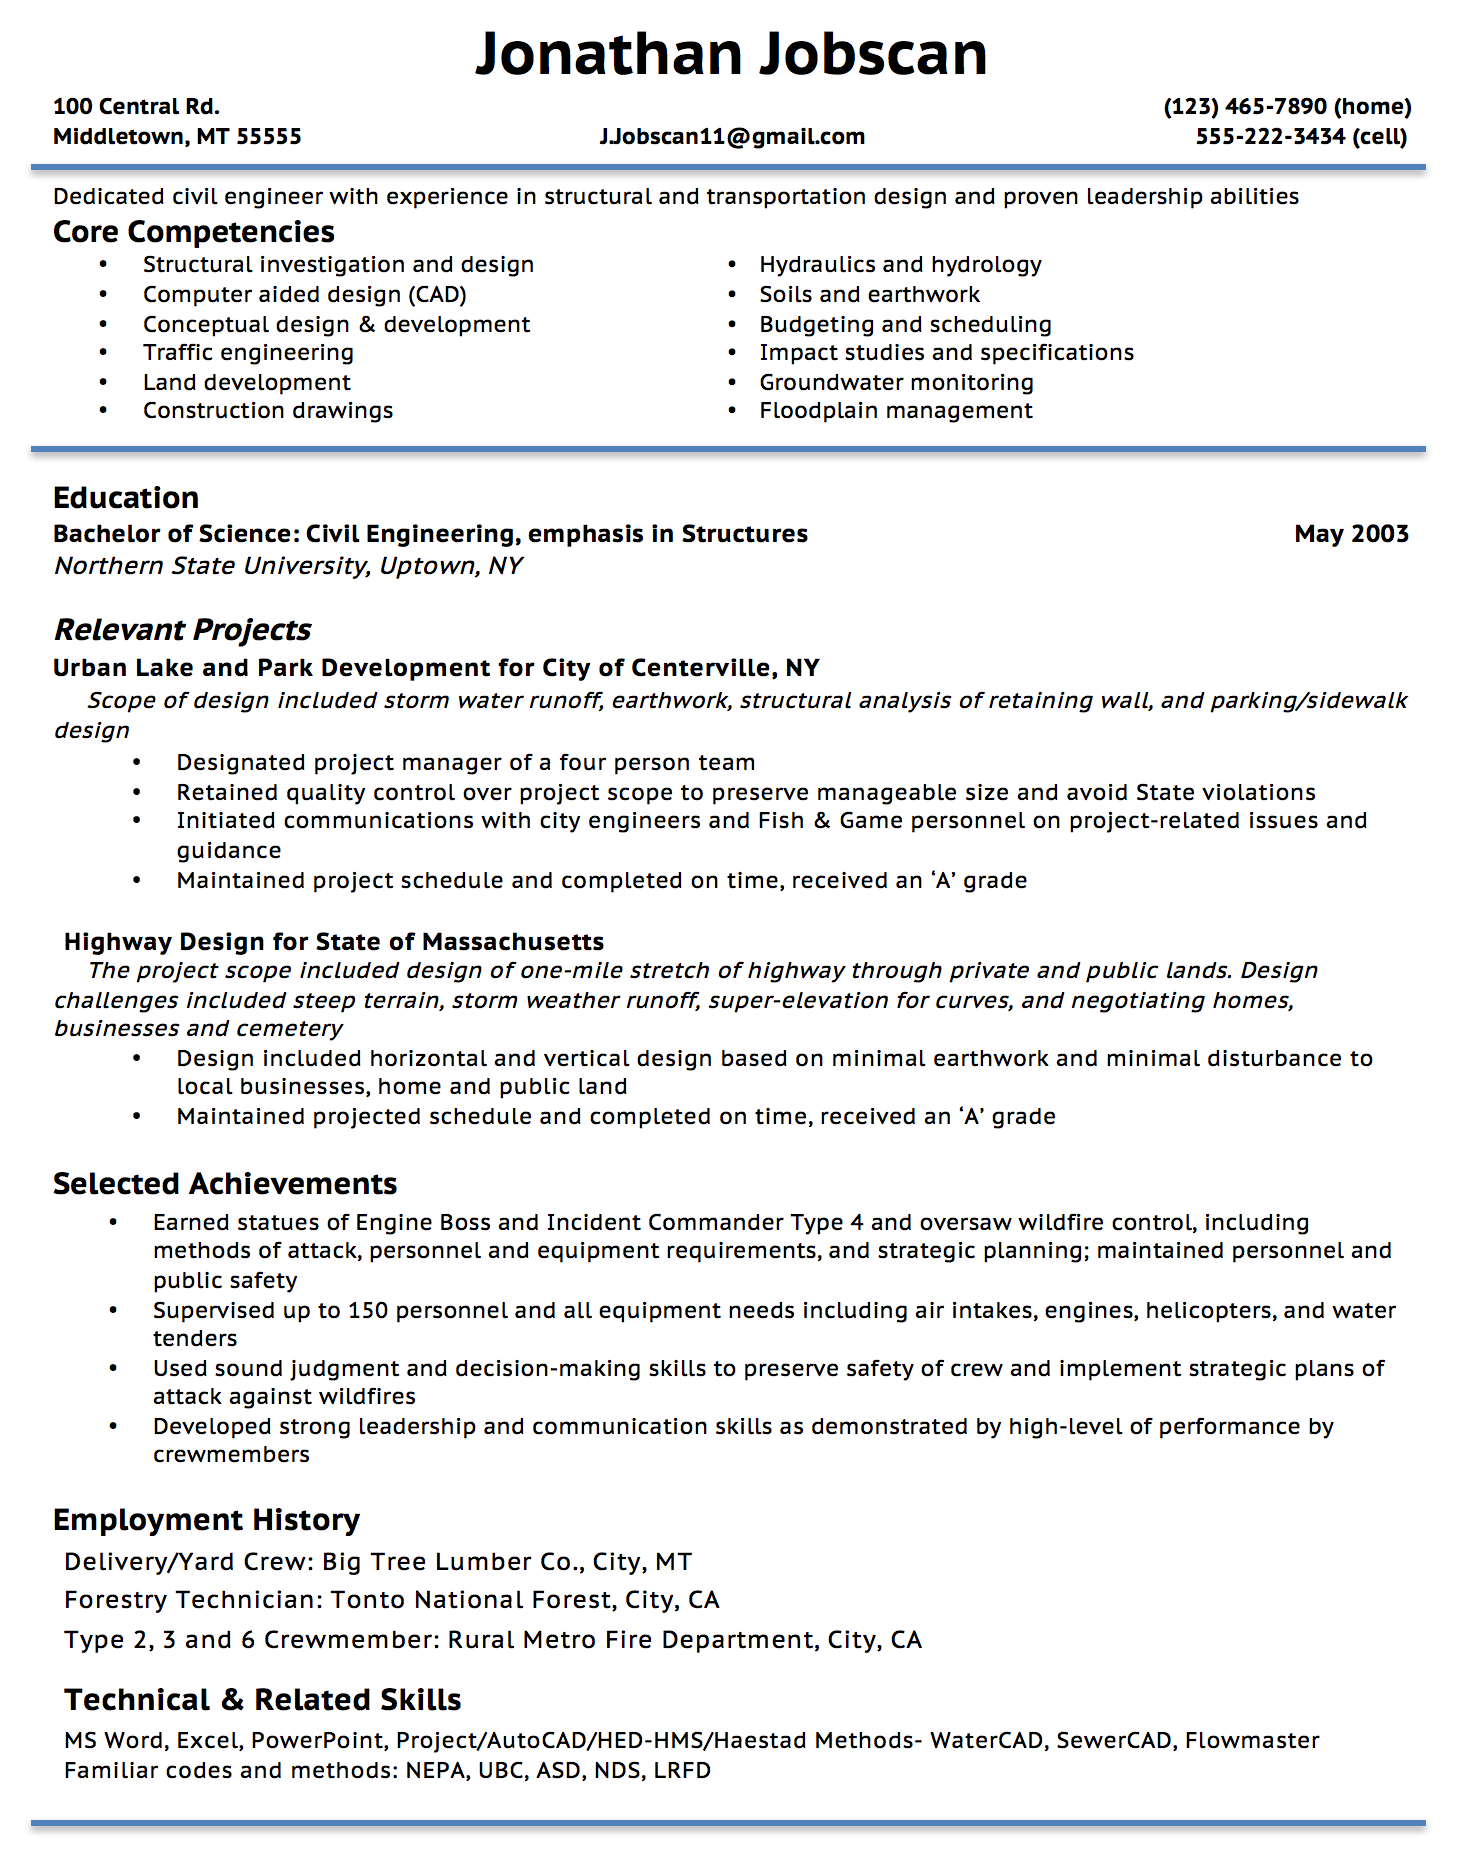 Opposenewapstandardsus  Seductive Resume Writing Guide  Jobscan With Glamorous Example Of A Functional Resume Format With Delectable Leonardo Da Vinci Resume Also Where Can I Make A Free Resume In Addition Montessori Teacher Resume And Cognos Resume As Well As Retail Resume Objective Examples Additionally Example Of Perfect Resume From Jobscanco With Opposenewapstandardsus  Glamorous Resume Writing Guide  Jobscan With Delectable Example Of A Functional Resume Format And Seductive Leonardo Da Vinci Resume Also Where Can I Make A Free Resume In Addition Montessori Teacher Resume From Jobscanco